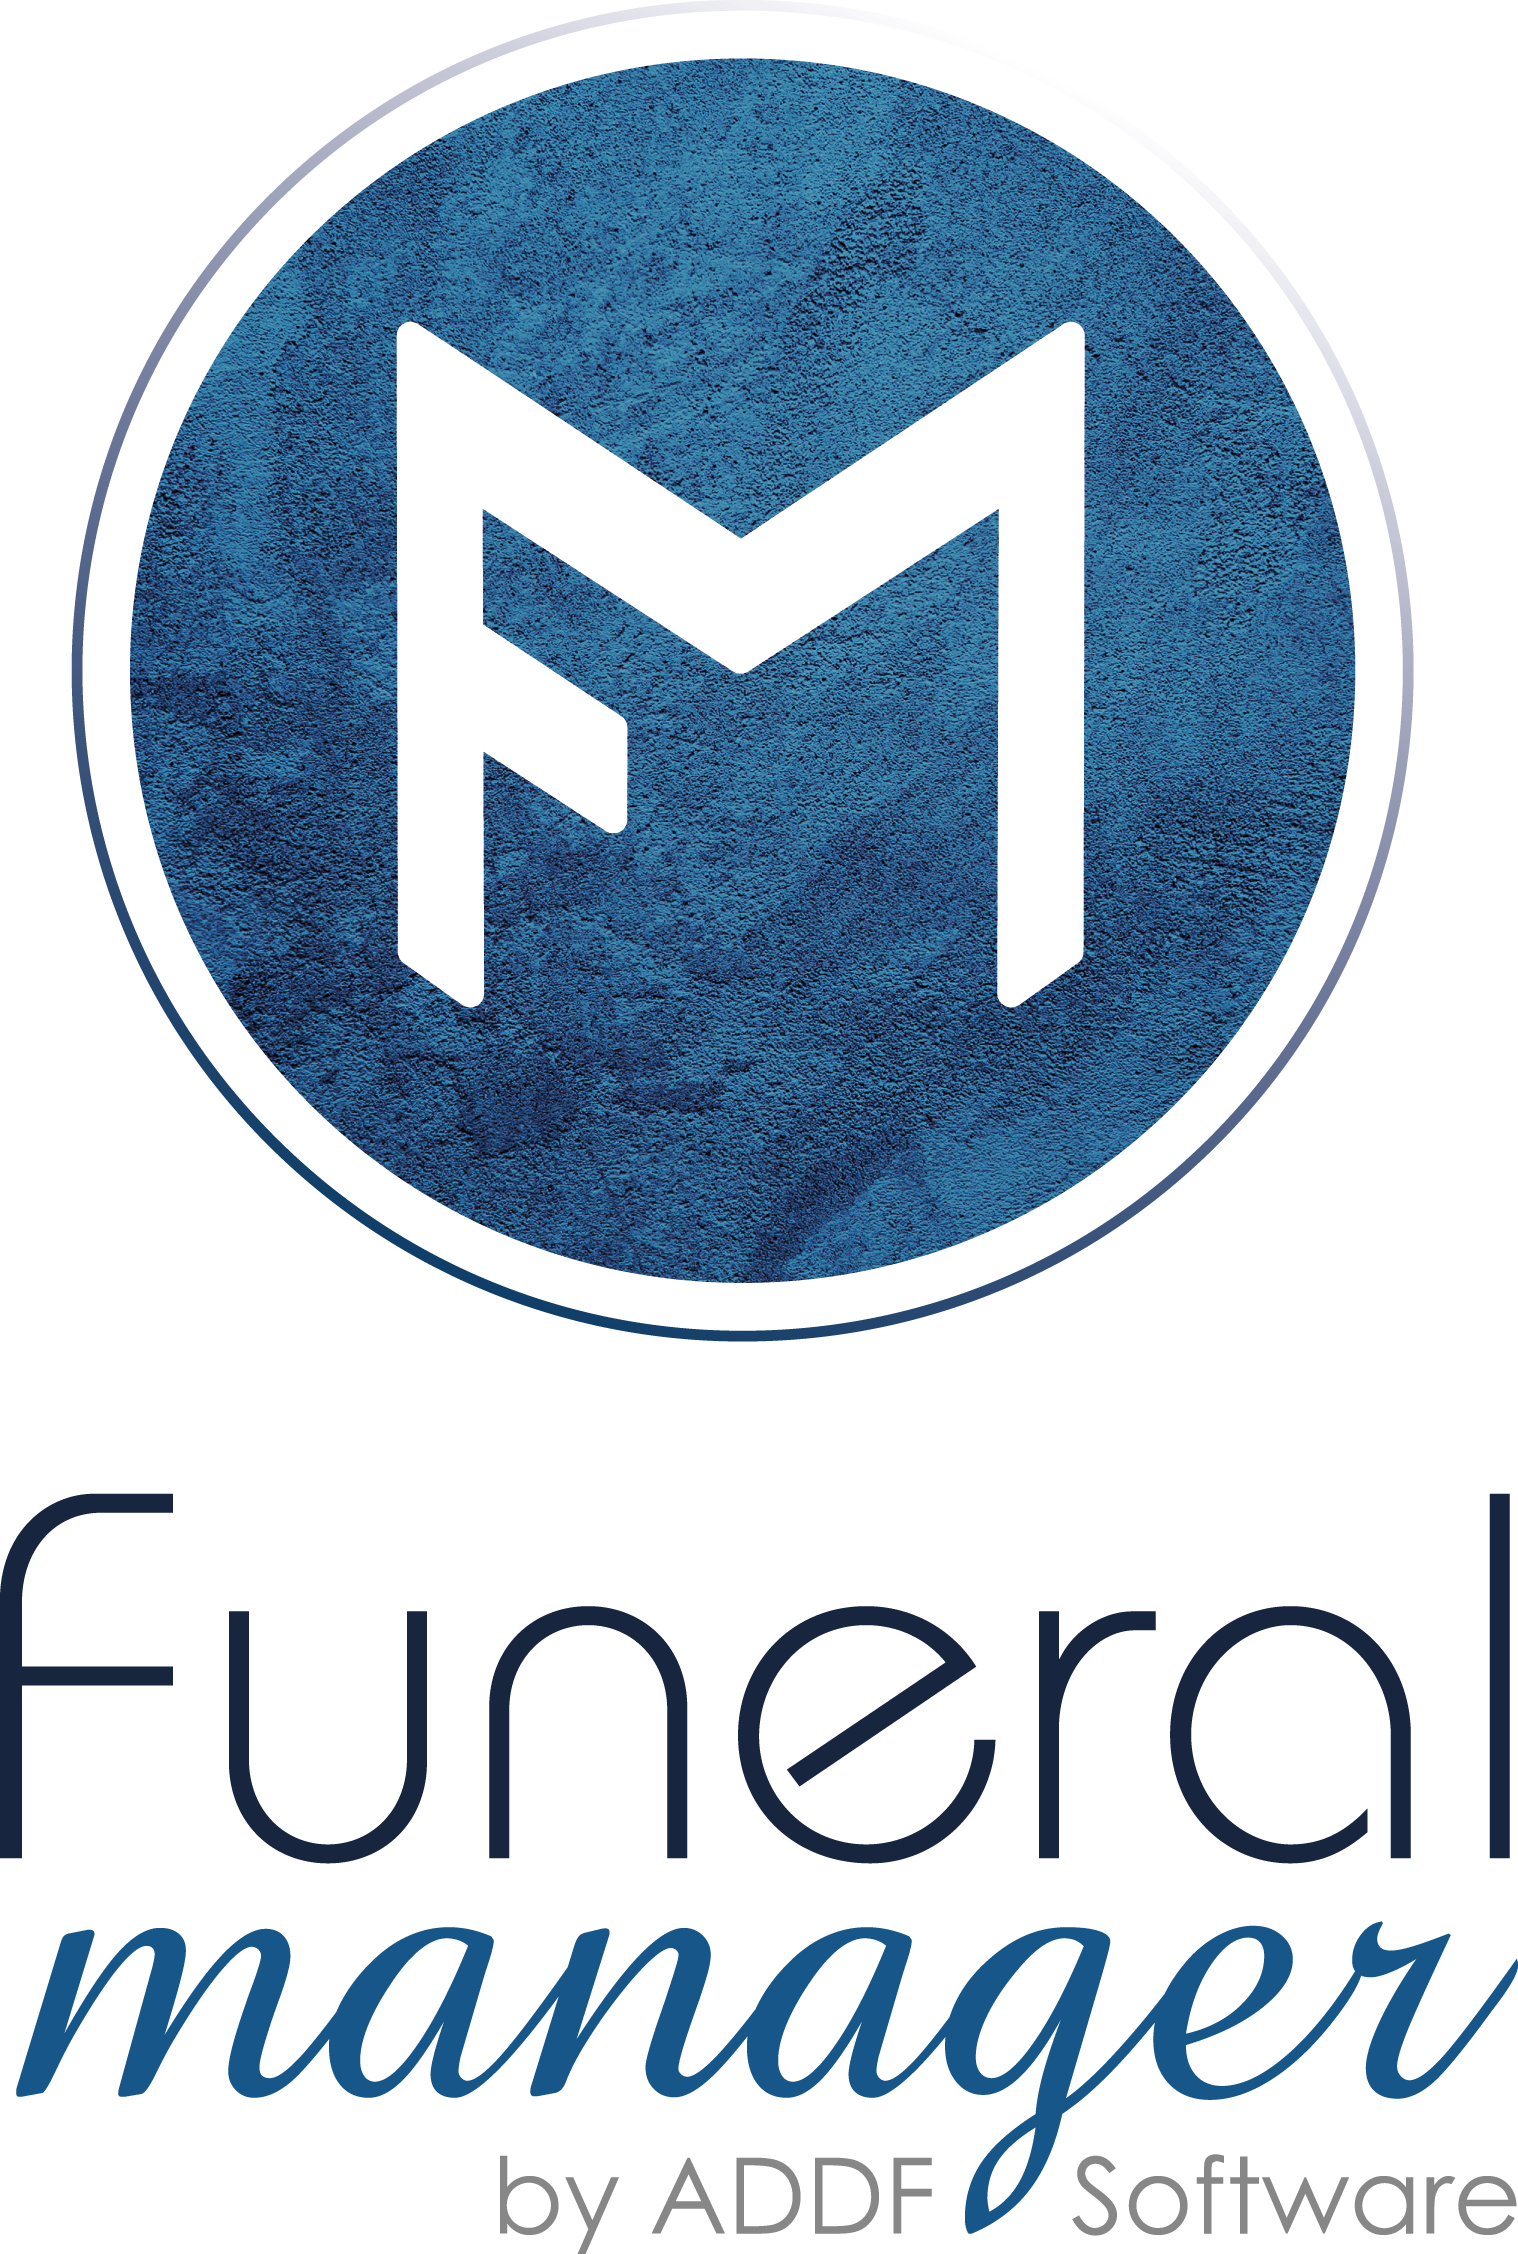 Funeral Manager (ADDF Software)